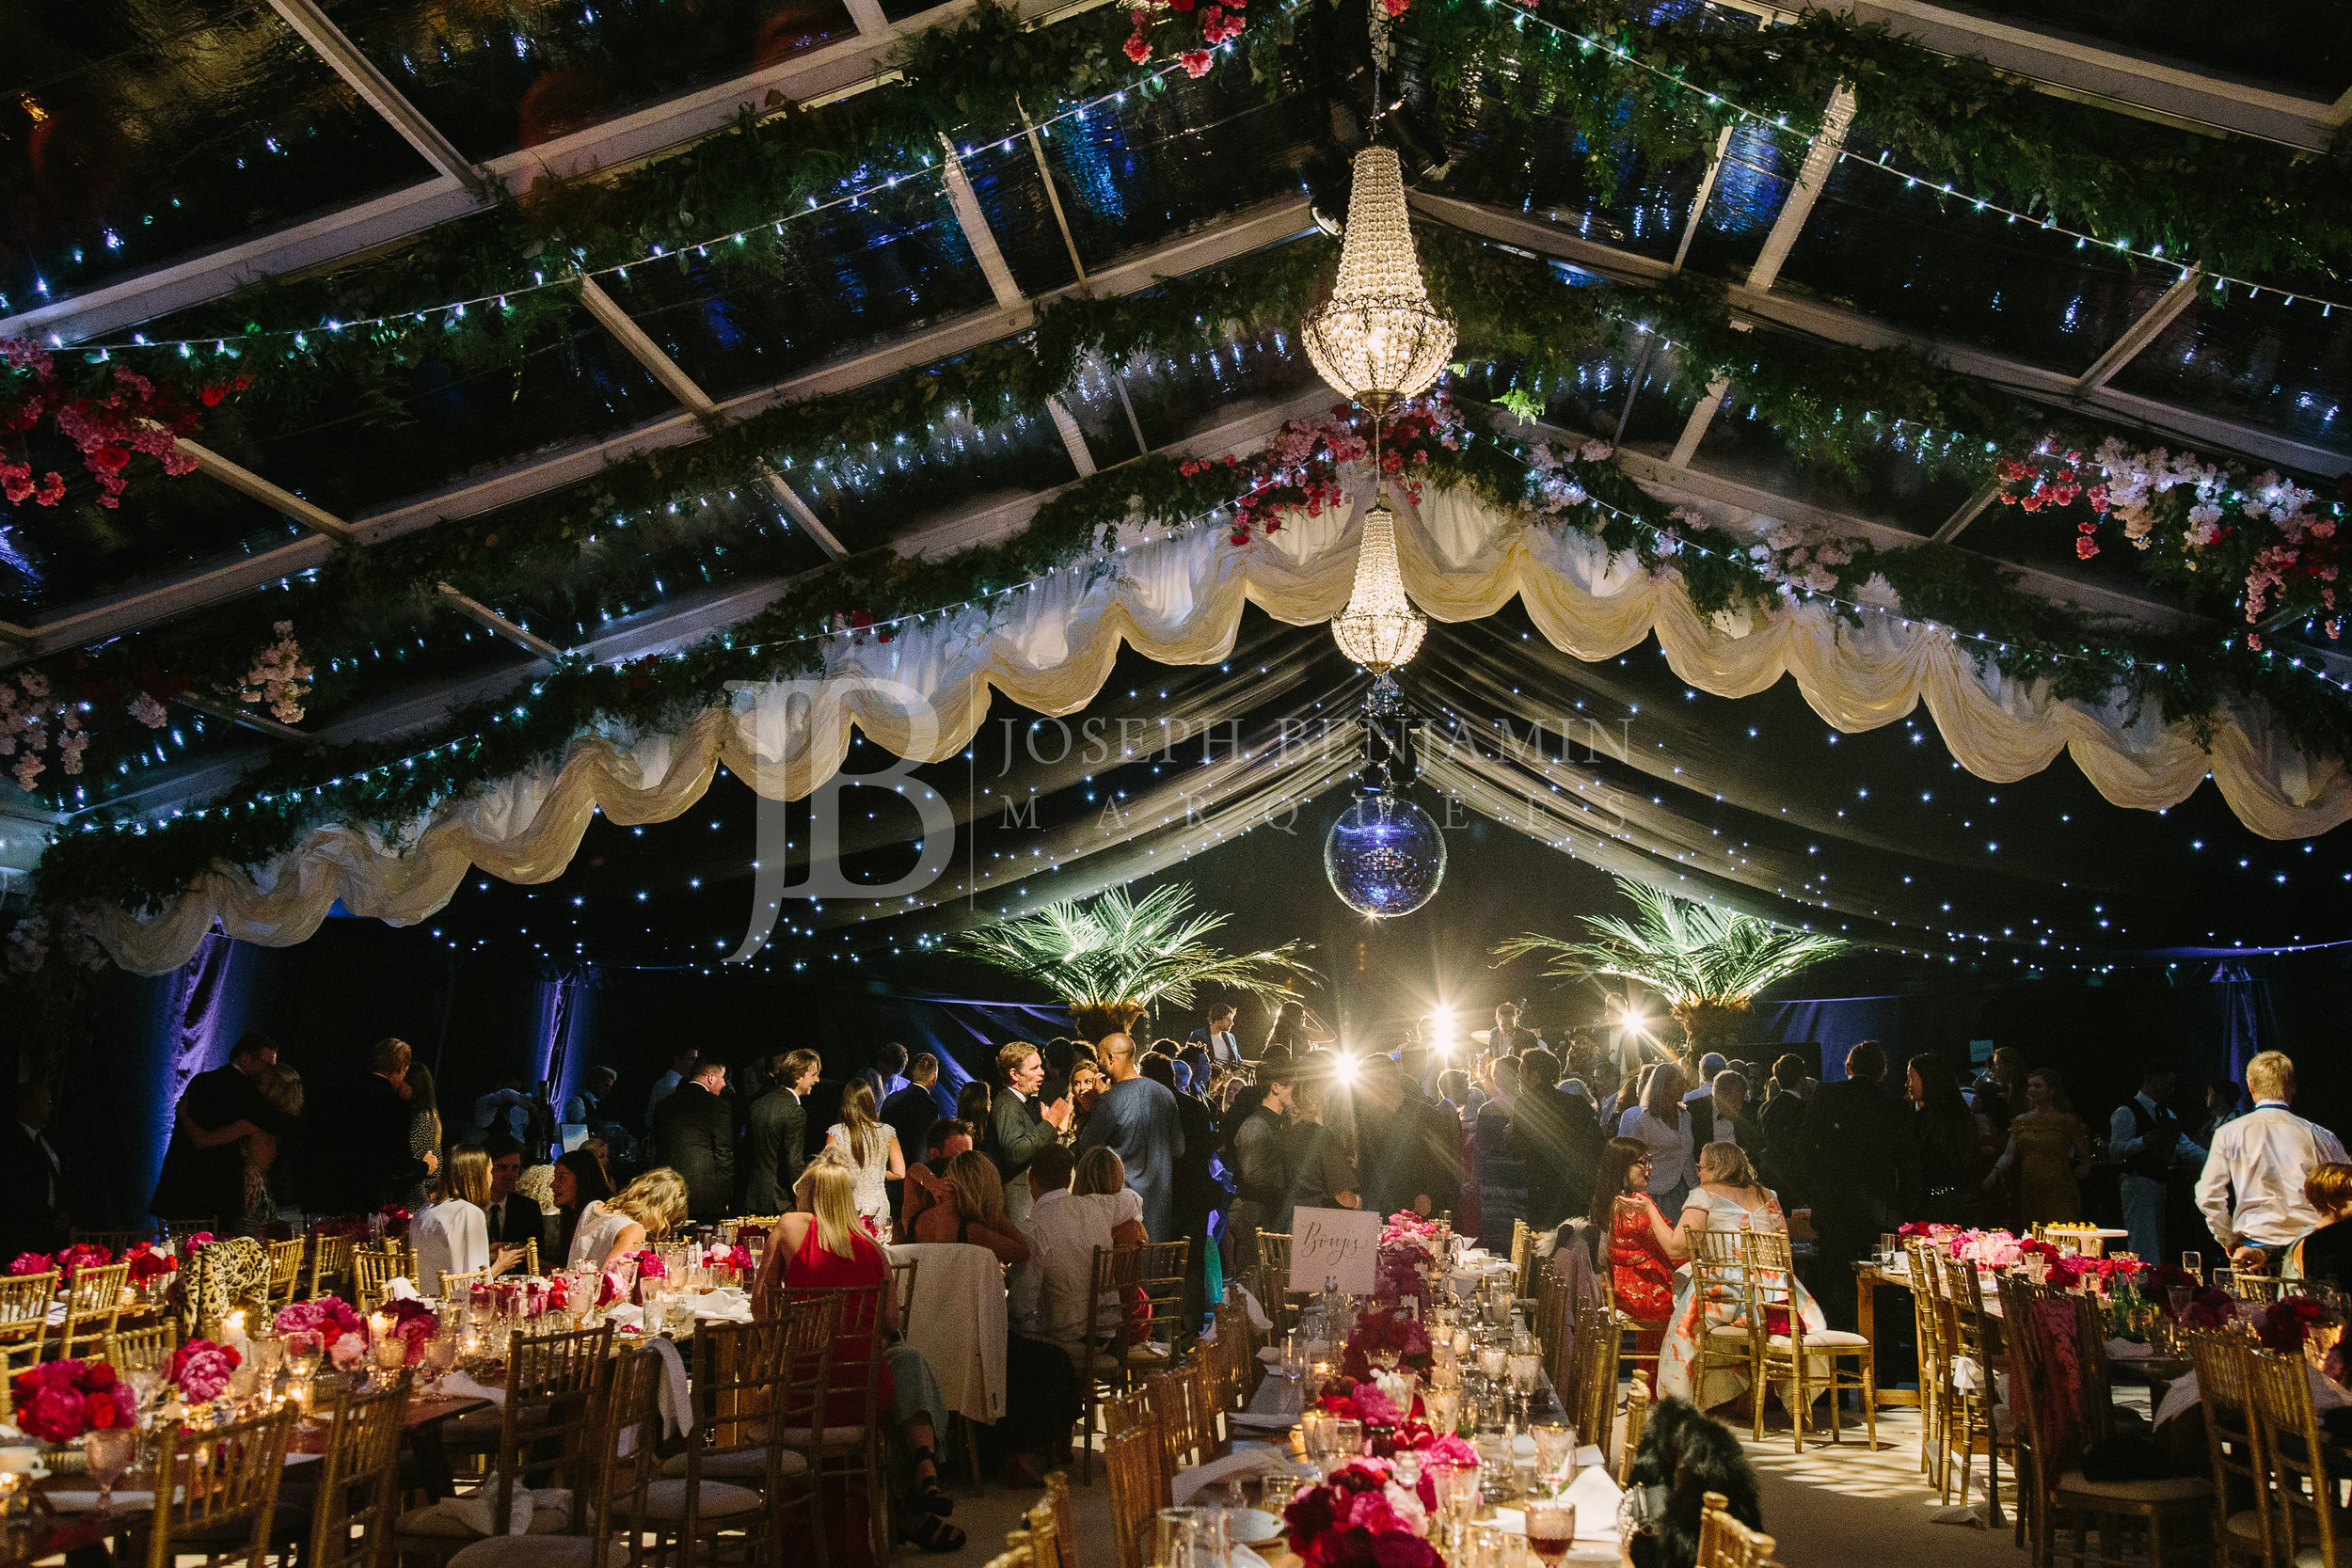 Wedding Marquee Interior from Joseph Benjamin Marquees